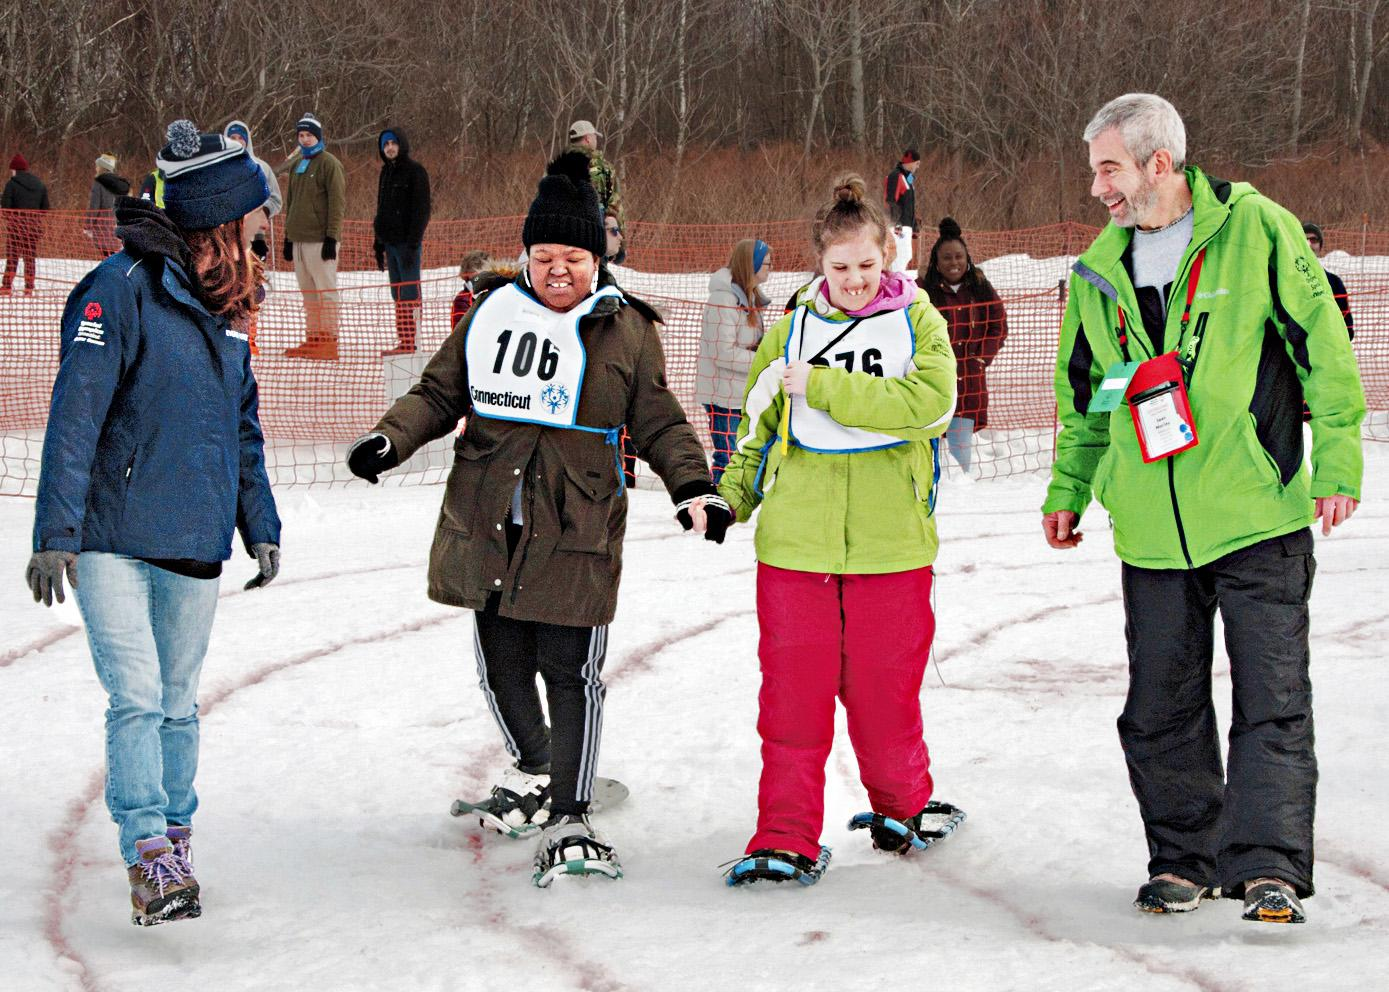 Powder Ridge, other venues to host Special Olympics CT Winter Games this weekend